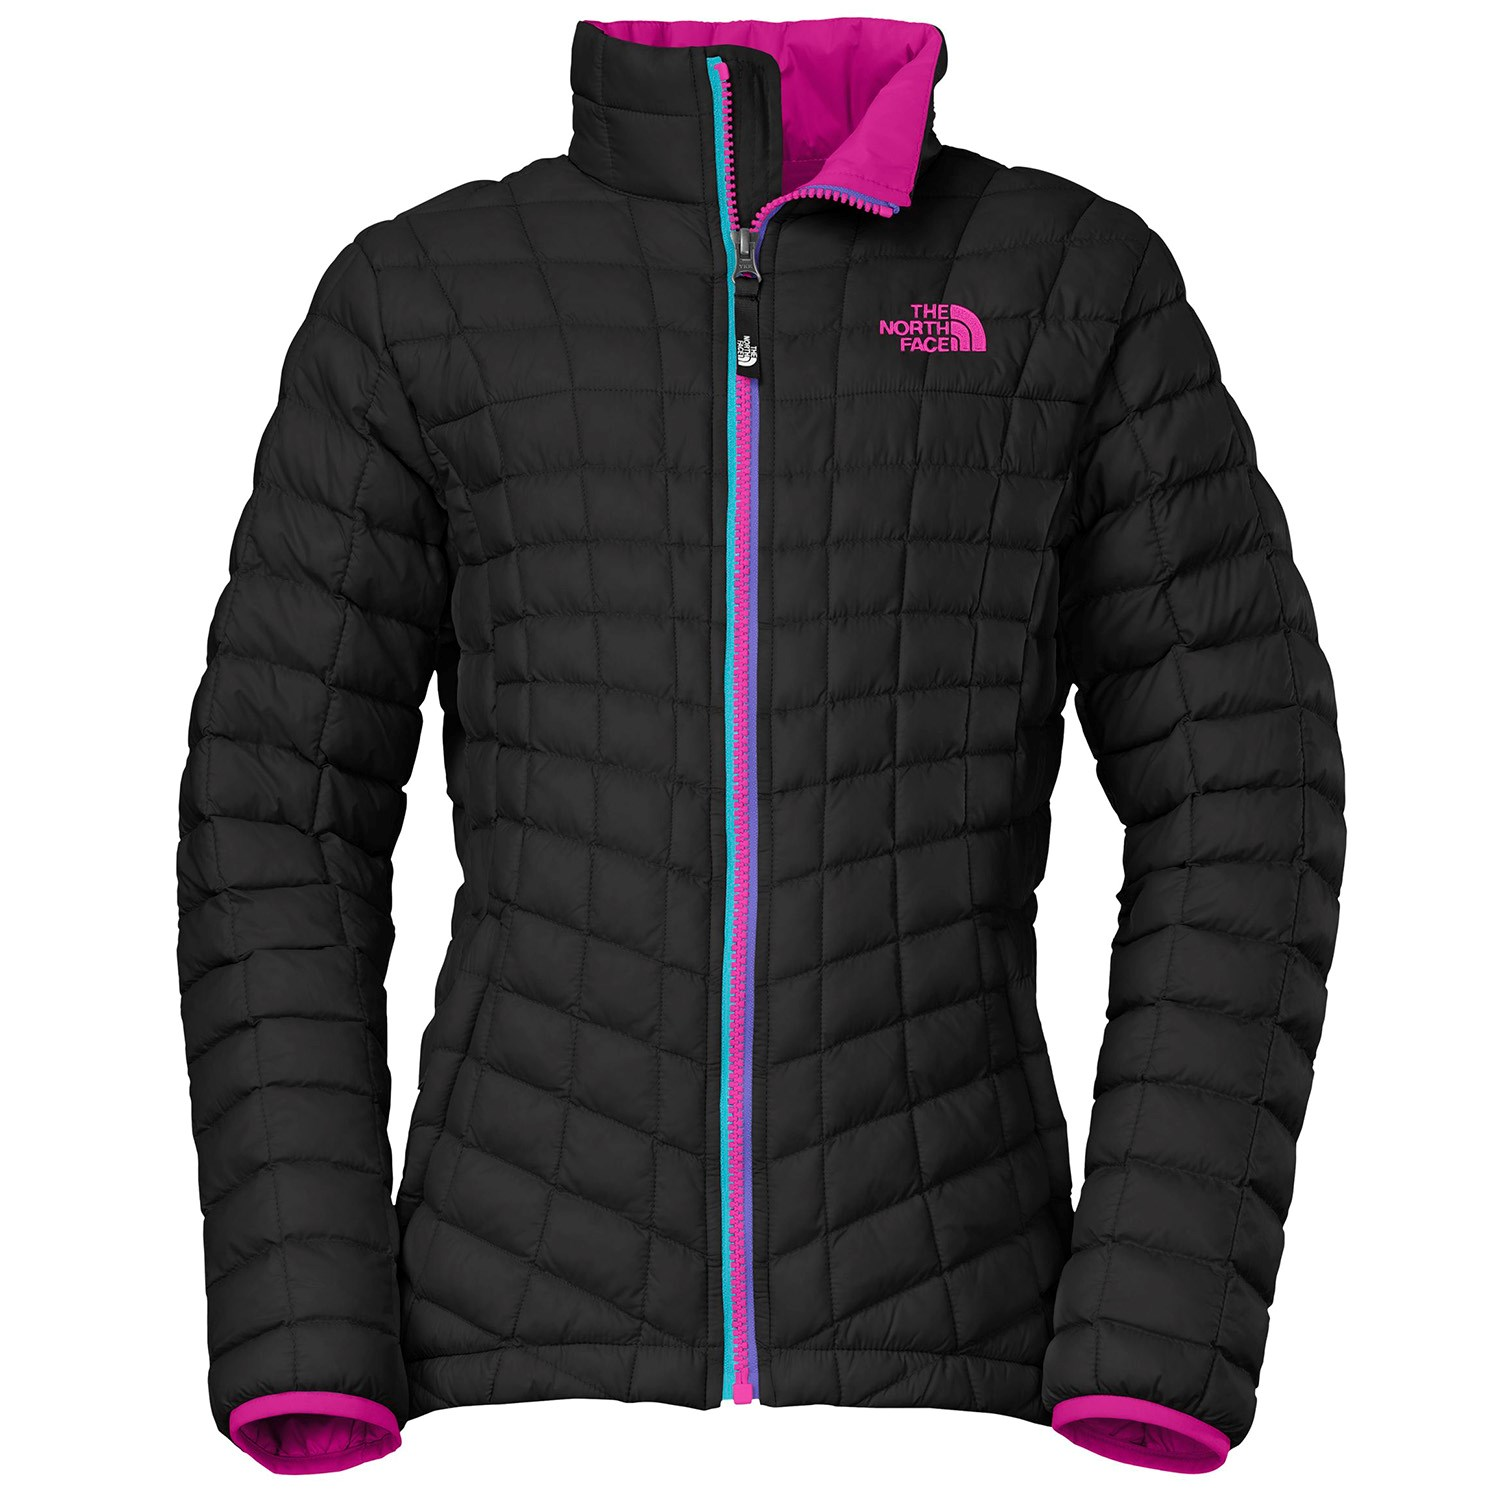 C PINK L XL THE NORTH FACE GIRLS YOUTH THERMOBALL FULL ZIP JACKET